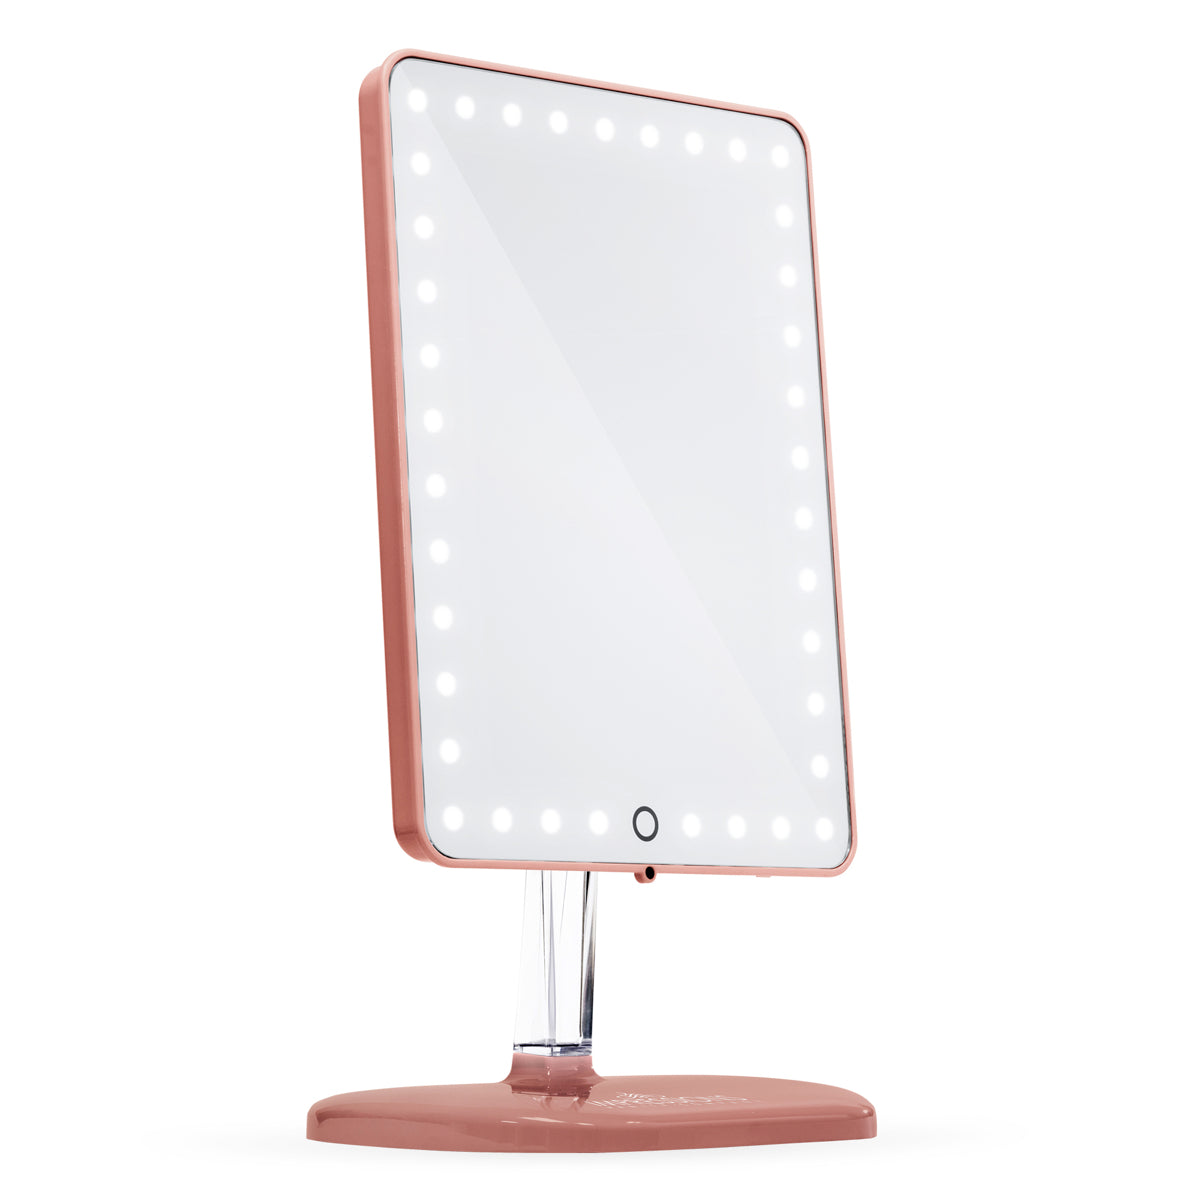 Touch Pro Led Makeup Mirror With Bluetooth Audio Speakerphone Usb Charger Impressions Vanity Co